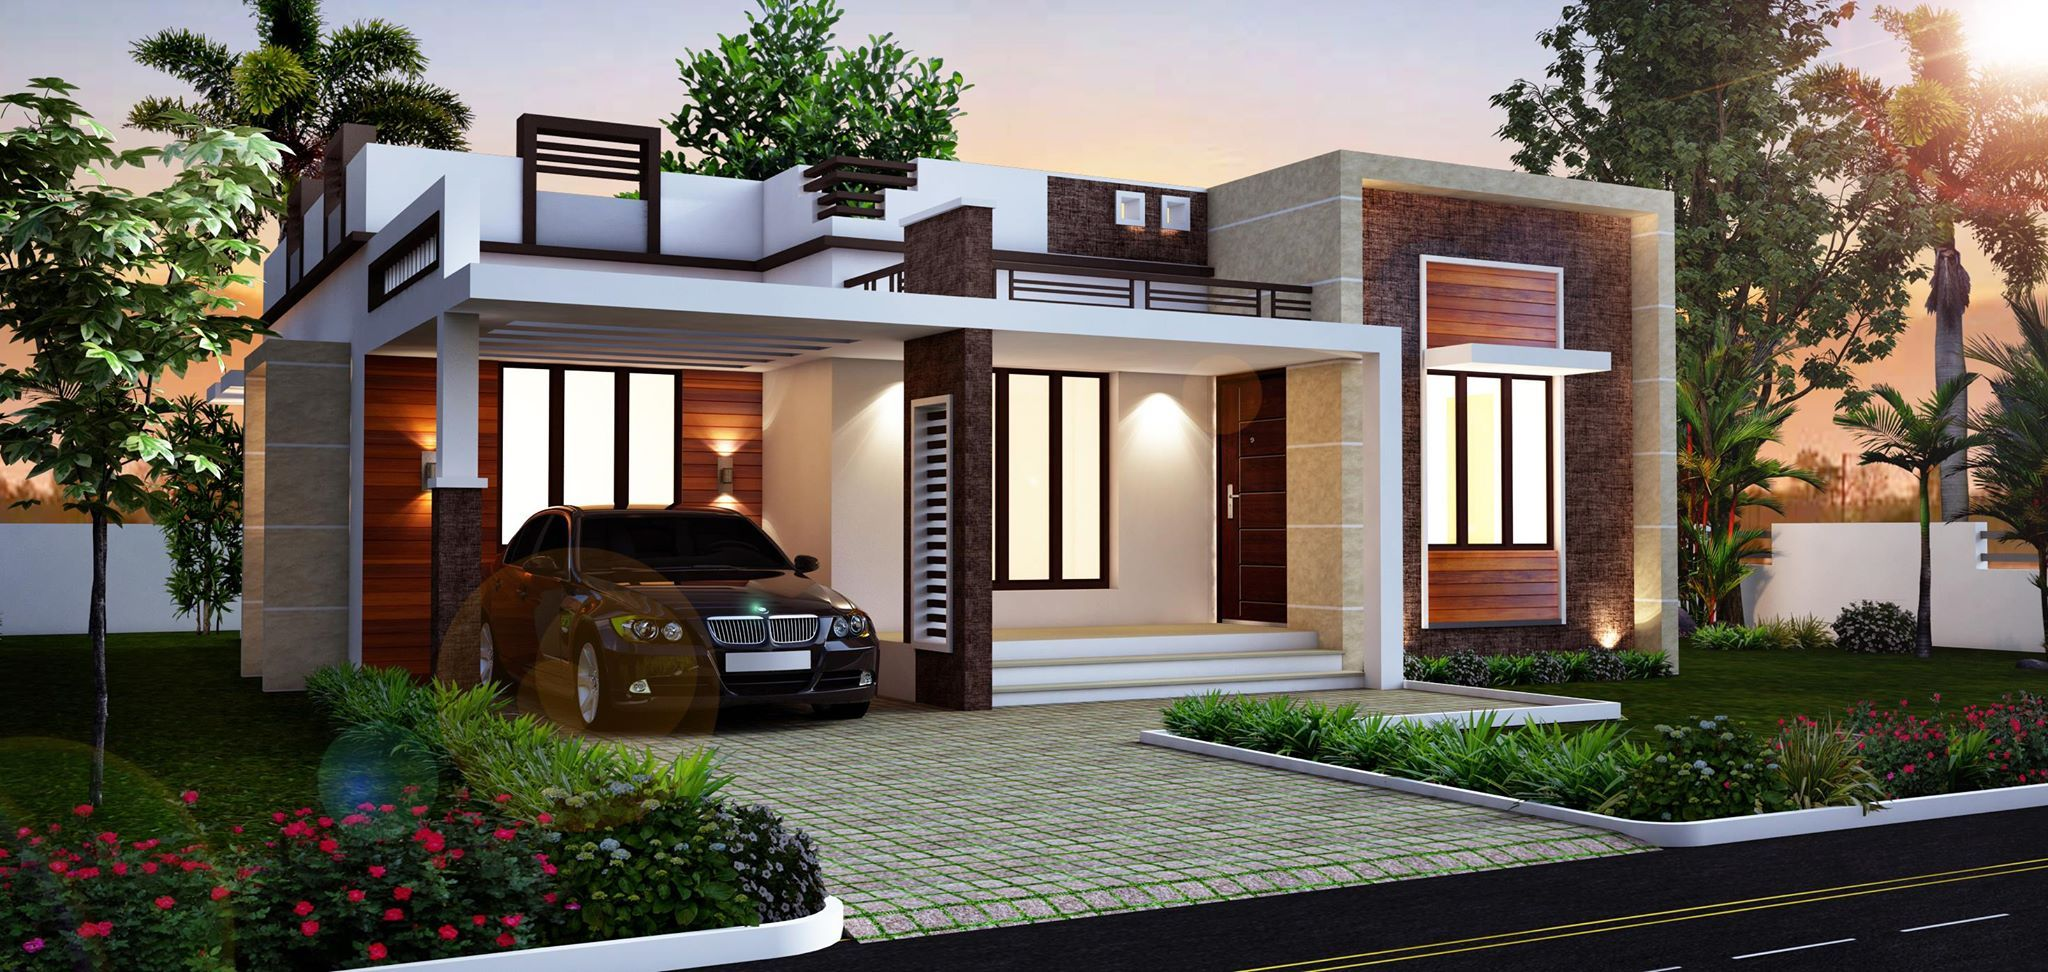 Architecture Design Kerala Model beautiful models of houses - yahoo image search results